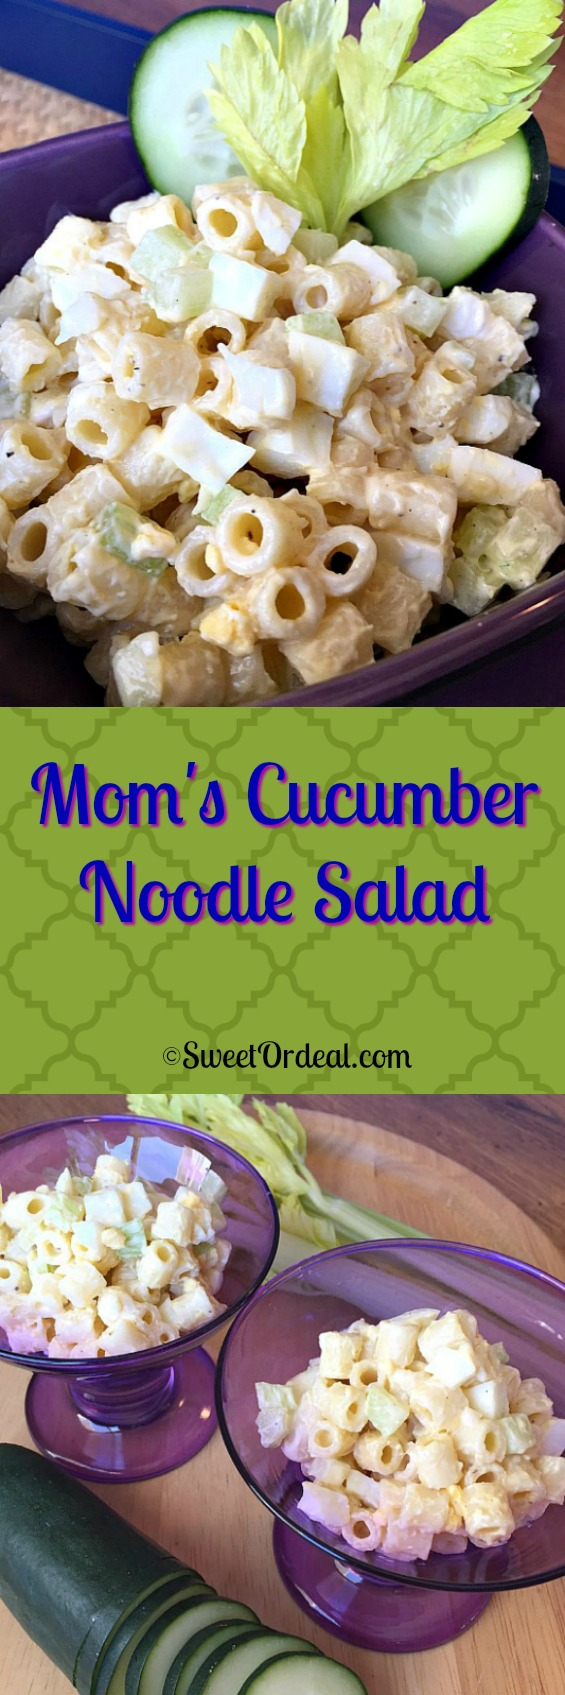 Mom's Cucumber Noodle Salad